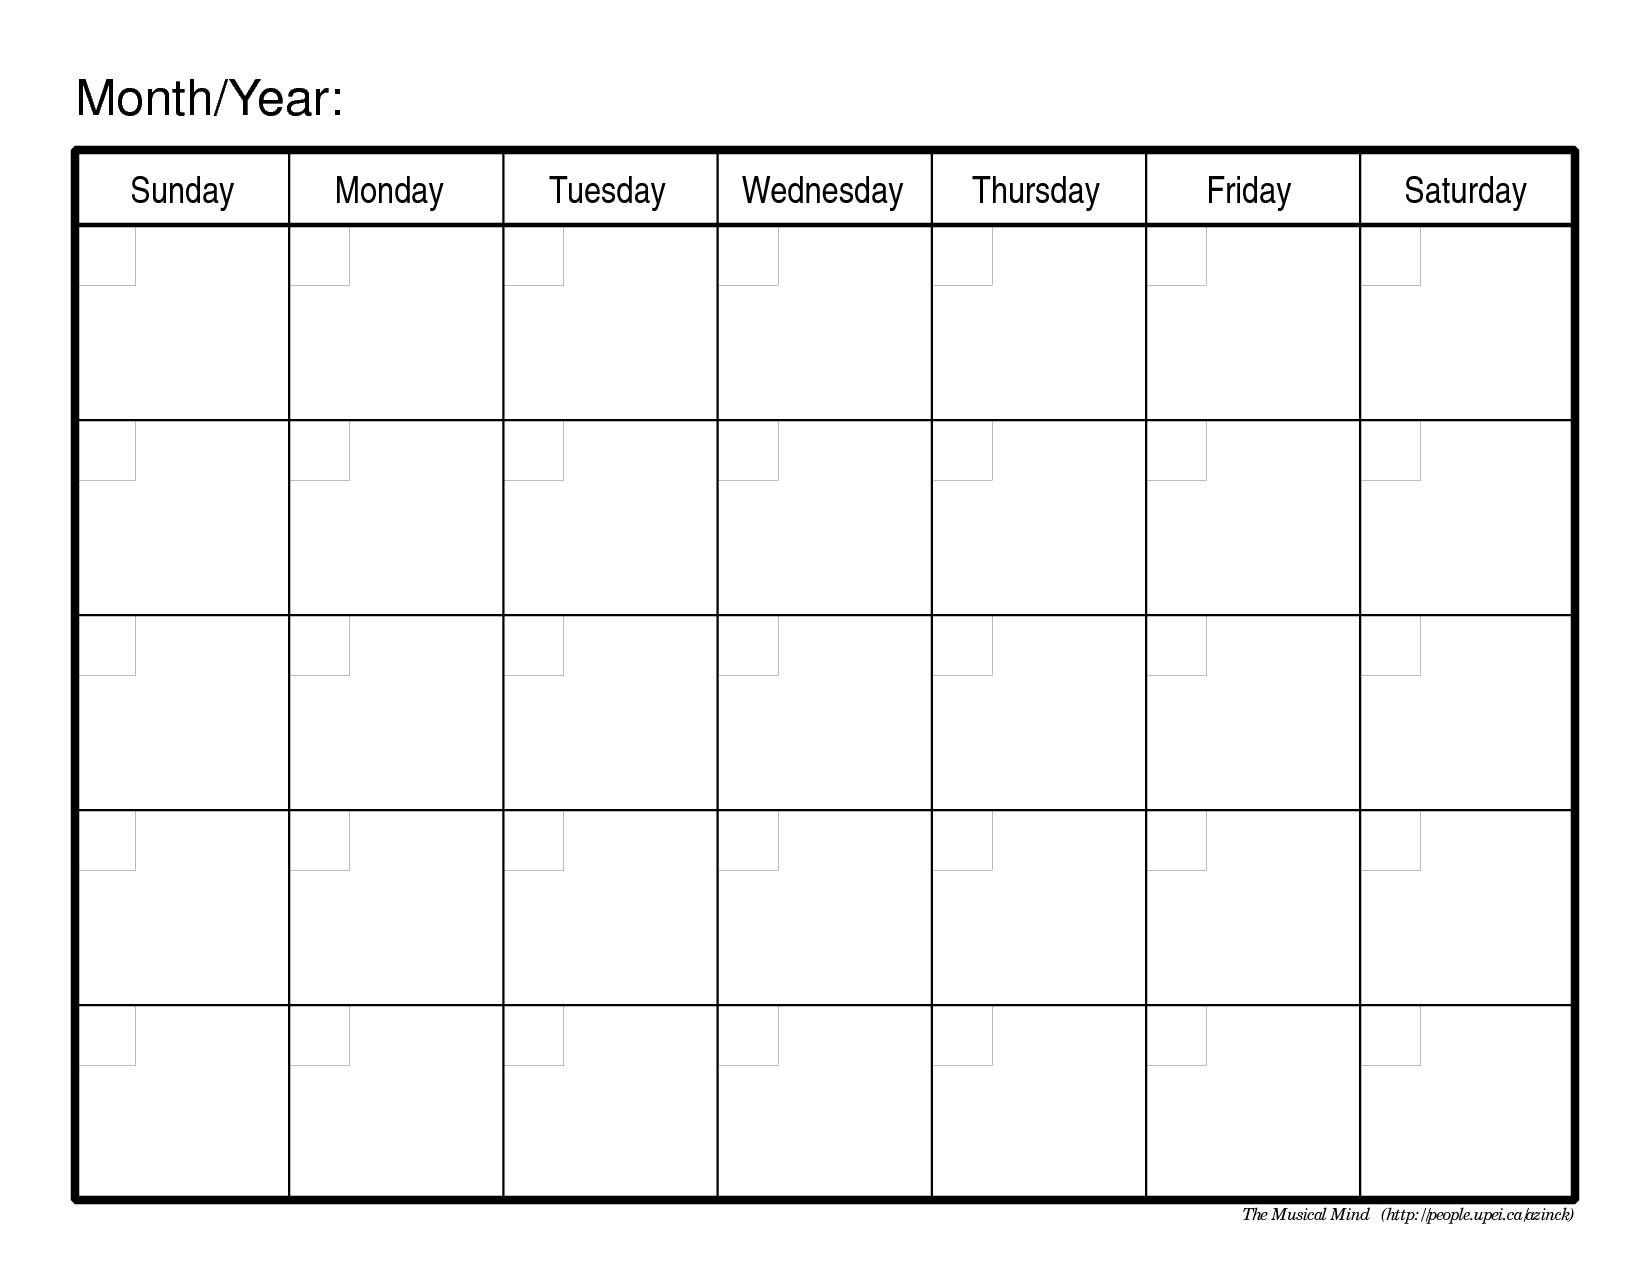 Month Calendar Template Word  Bolan.horizonconsulting.co with Fill In Blank Calendar